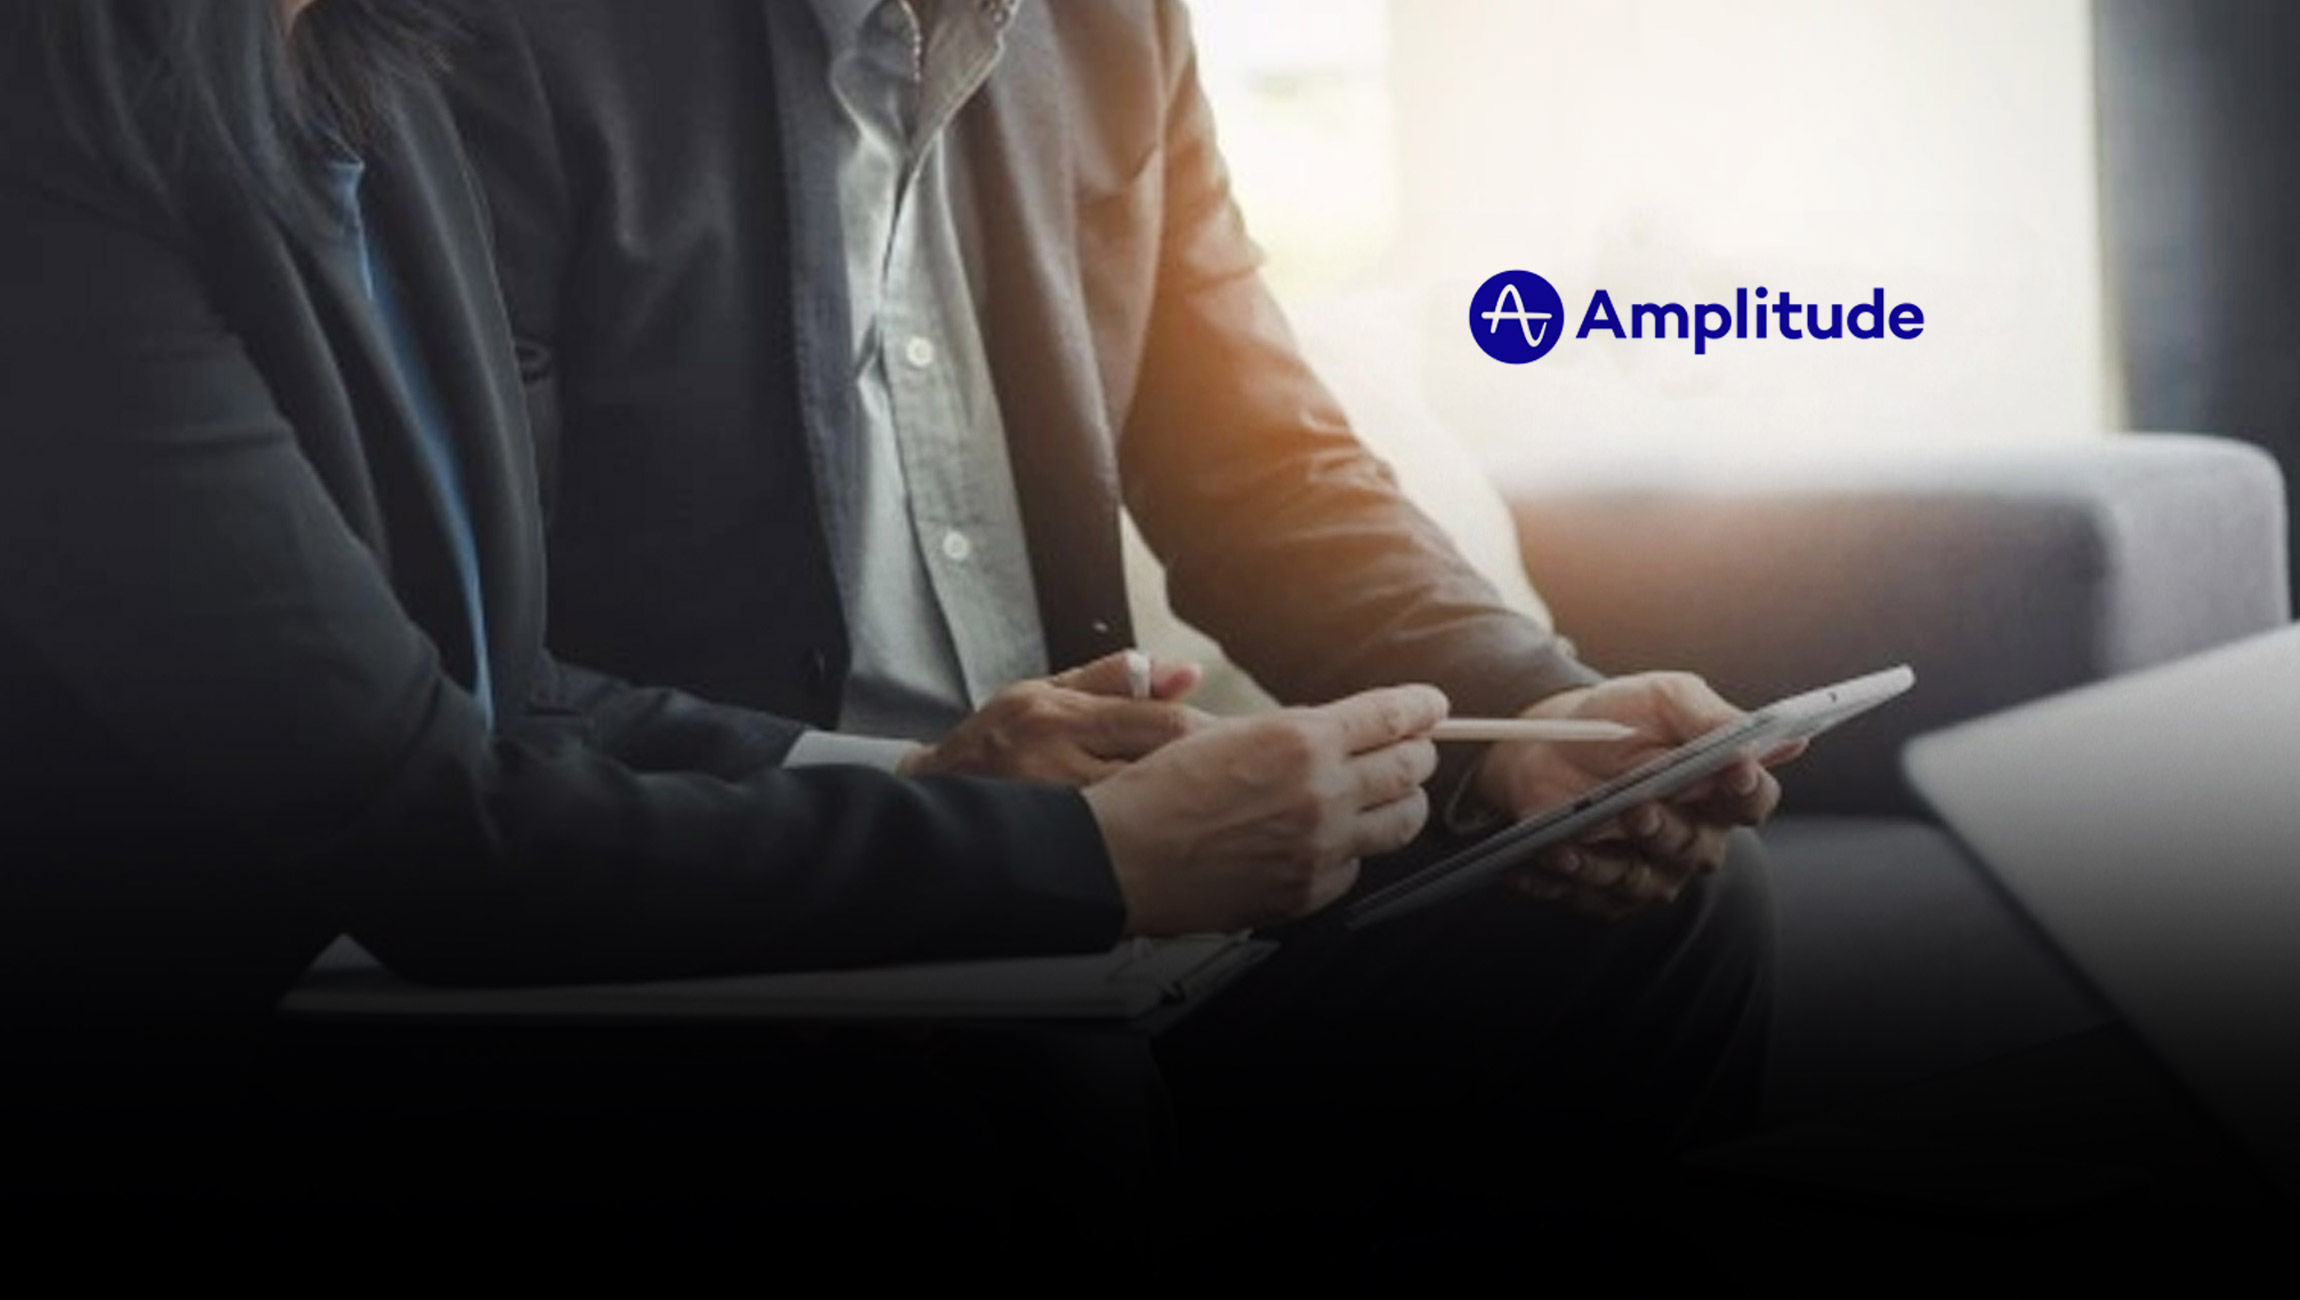 Amplitude Announces Lineup of Experts and Celebs for Inaugural Digital Disruptors Summit